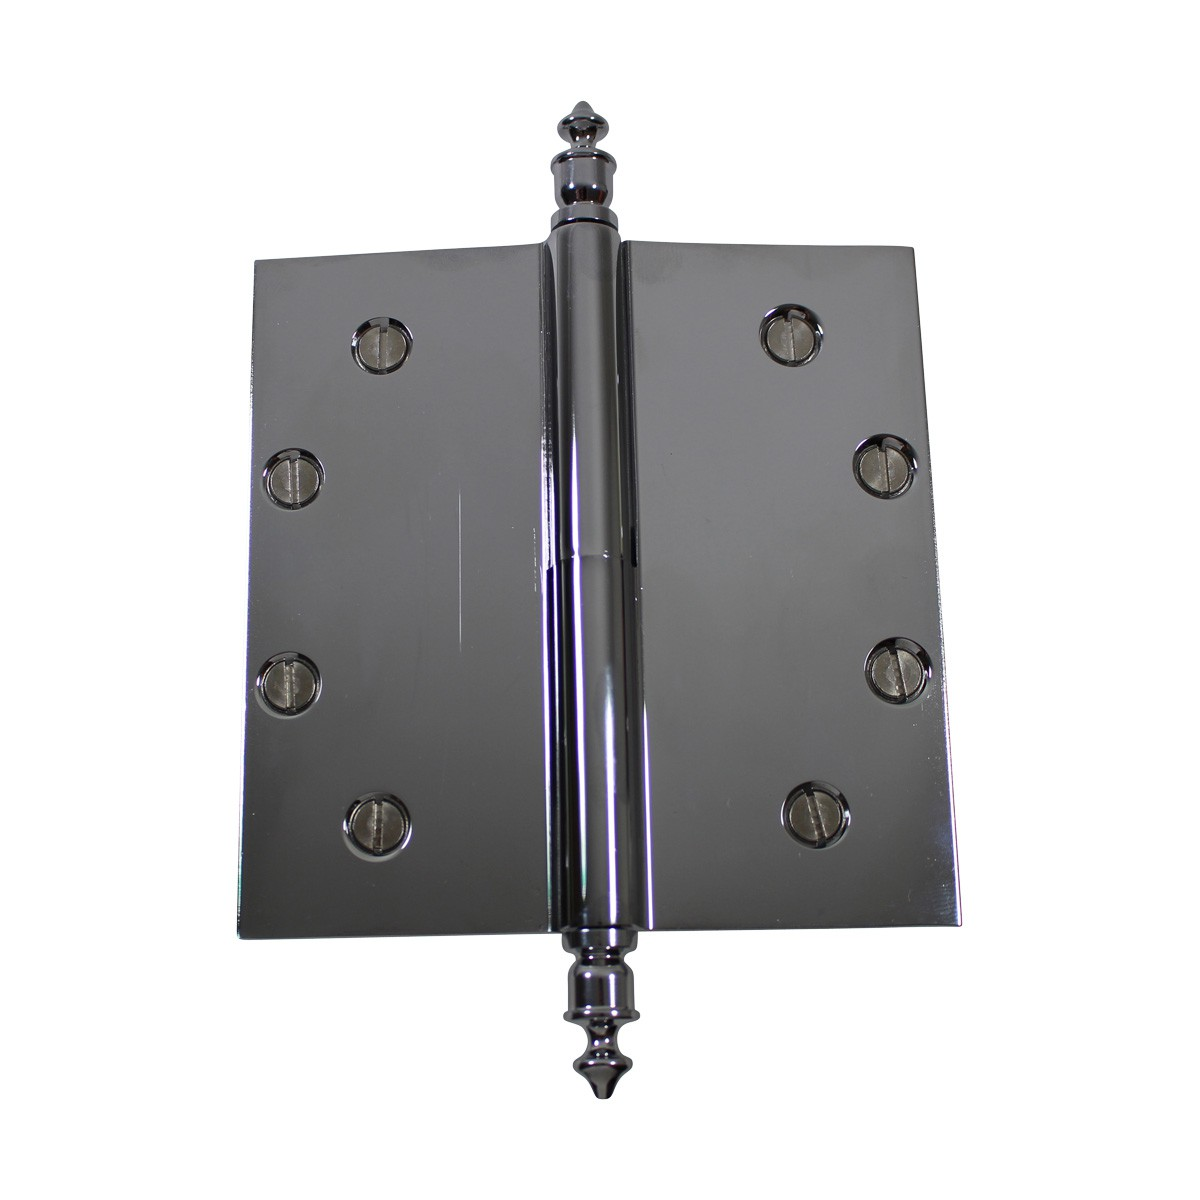 5 in. Lift Off Right Chrome Brass Door Hinge Urn Tip Door Hinges Door Hinge Solid Brass Hinge